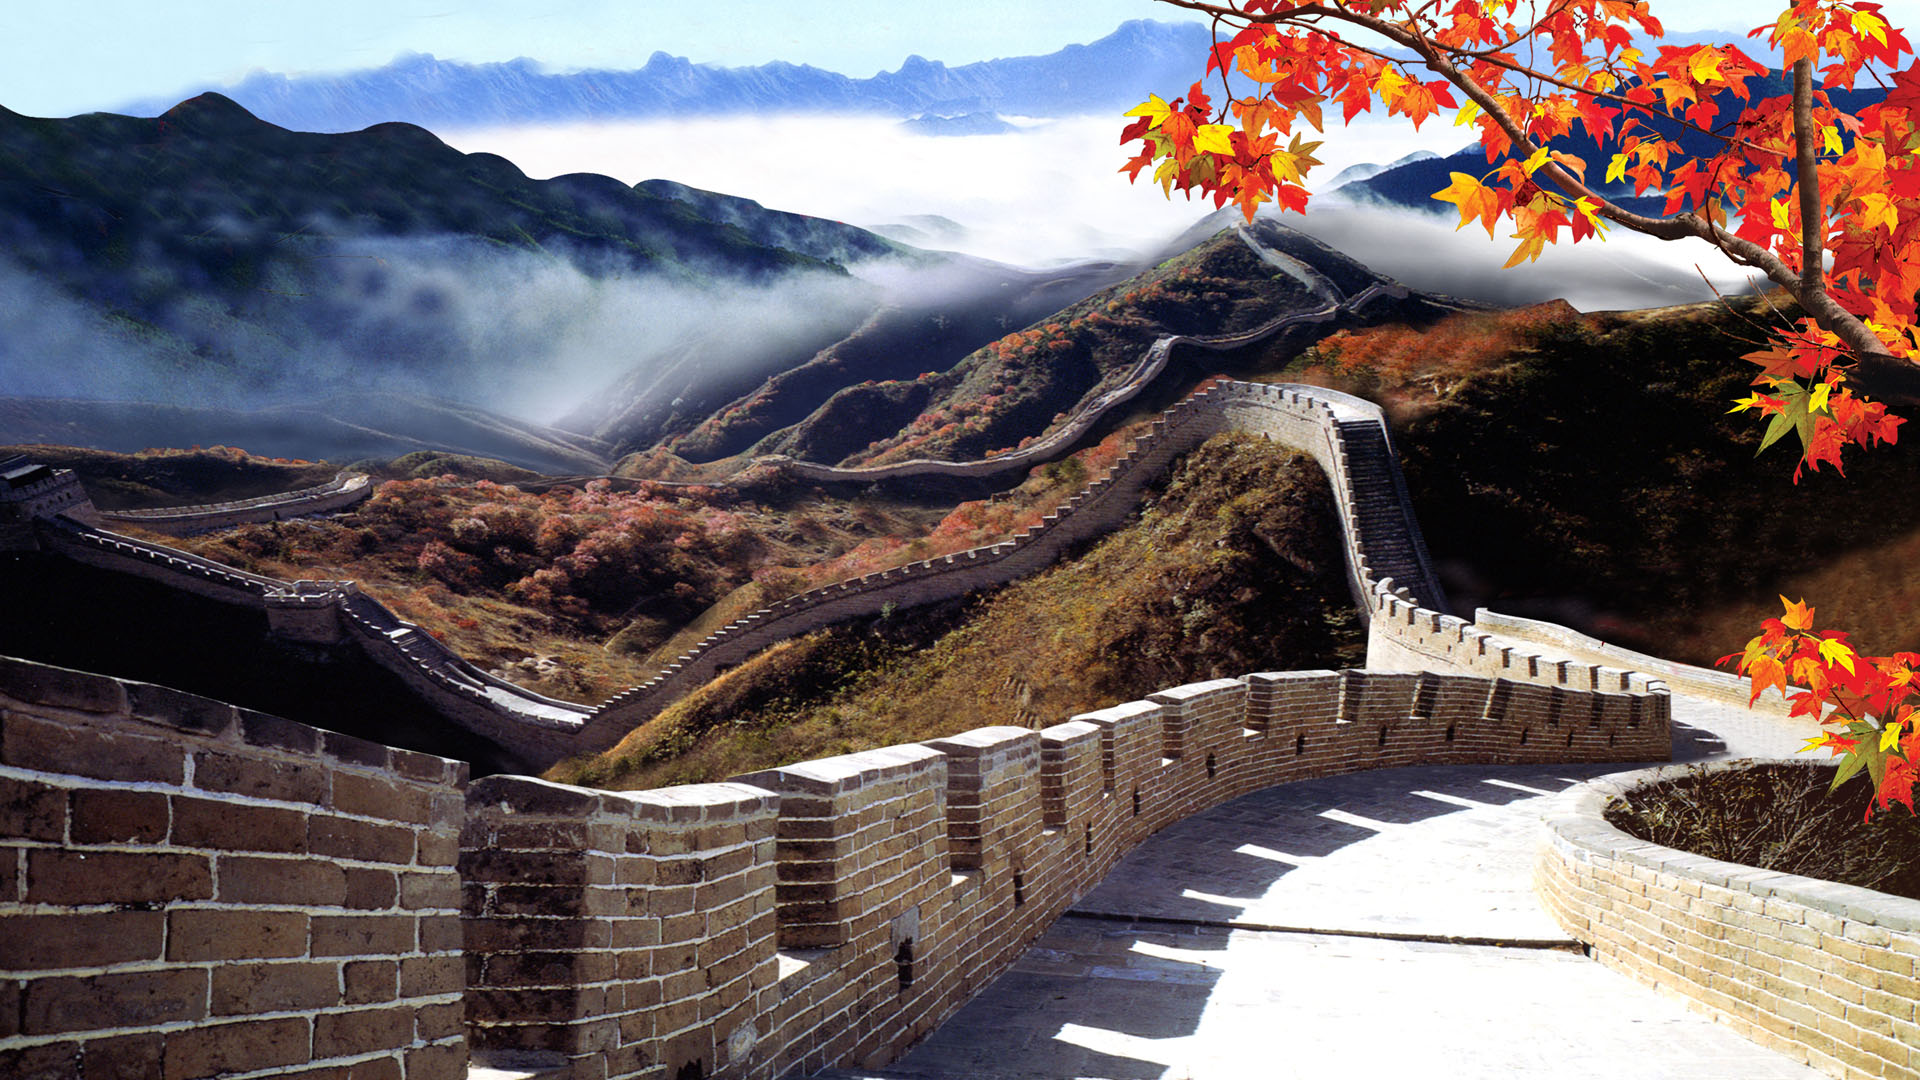 Great Wall of China Under Fog Wallpaper   Travel HD Wallpapers 1920x1080